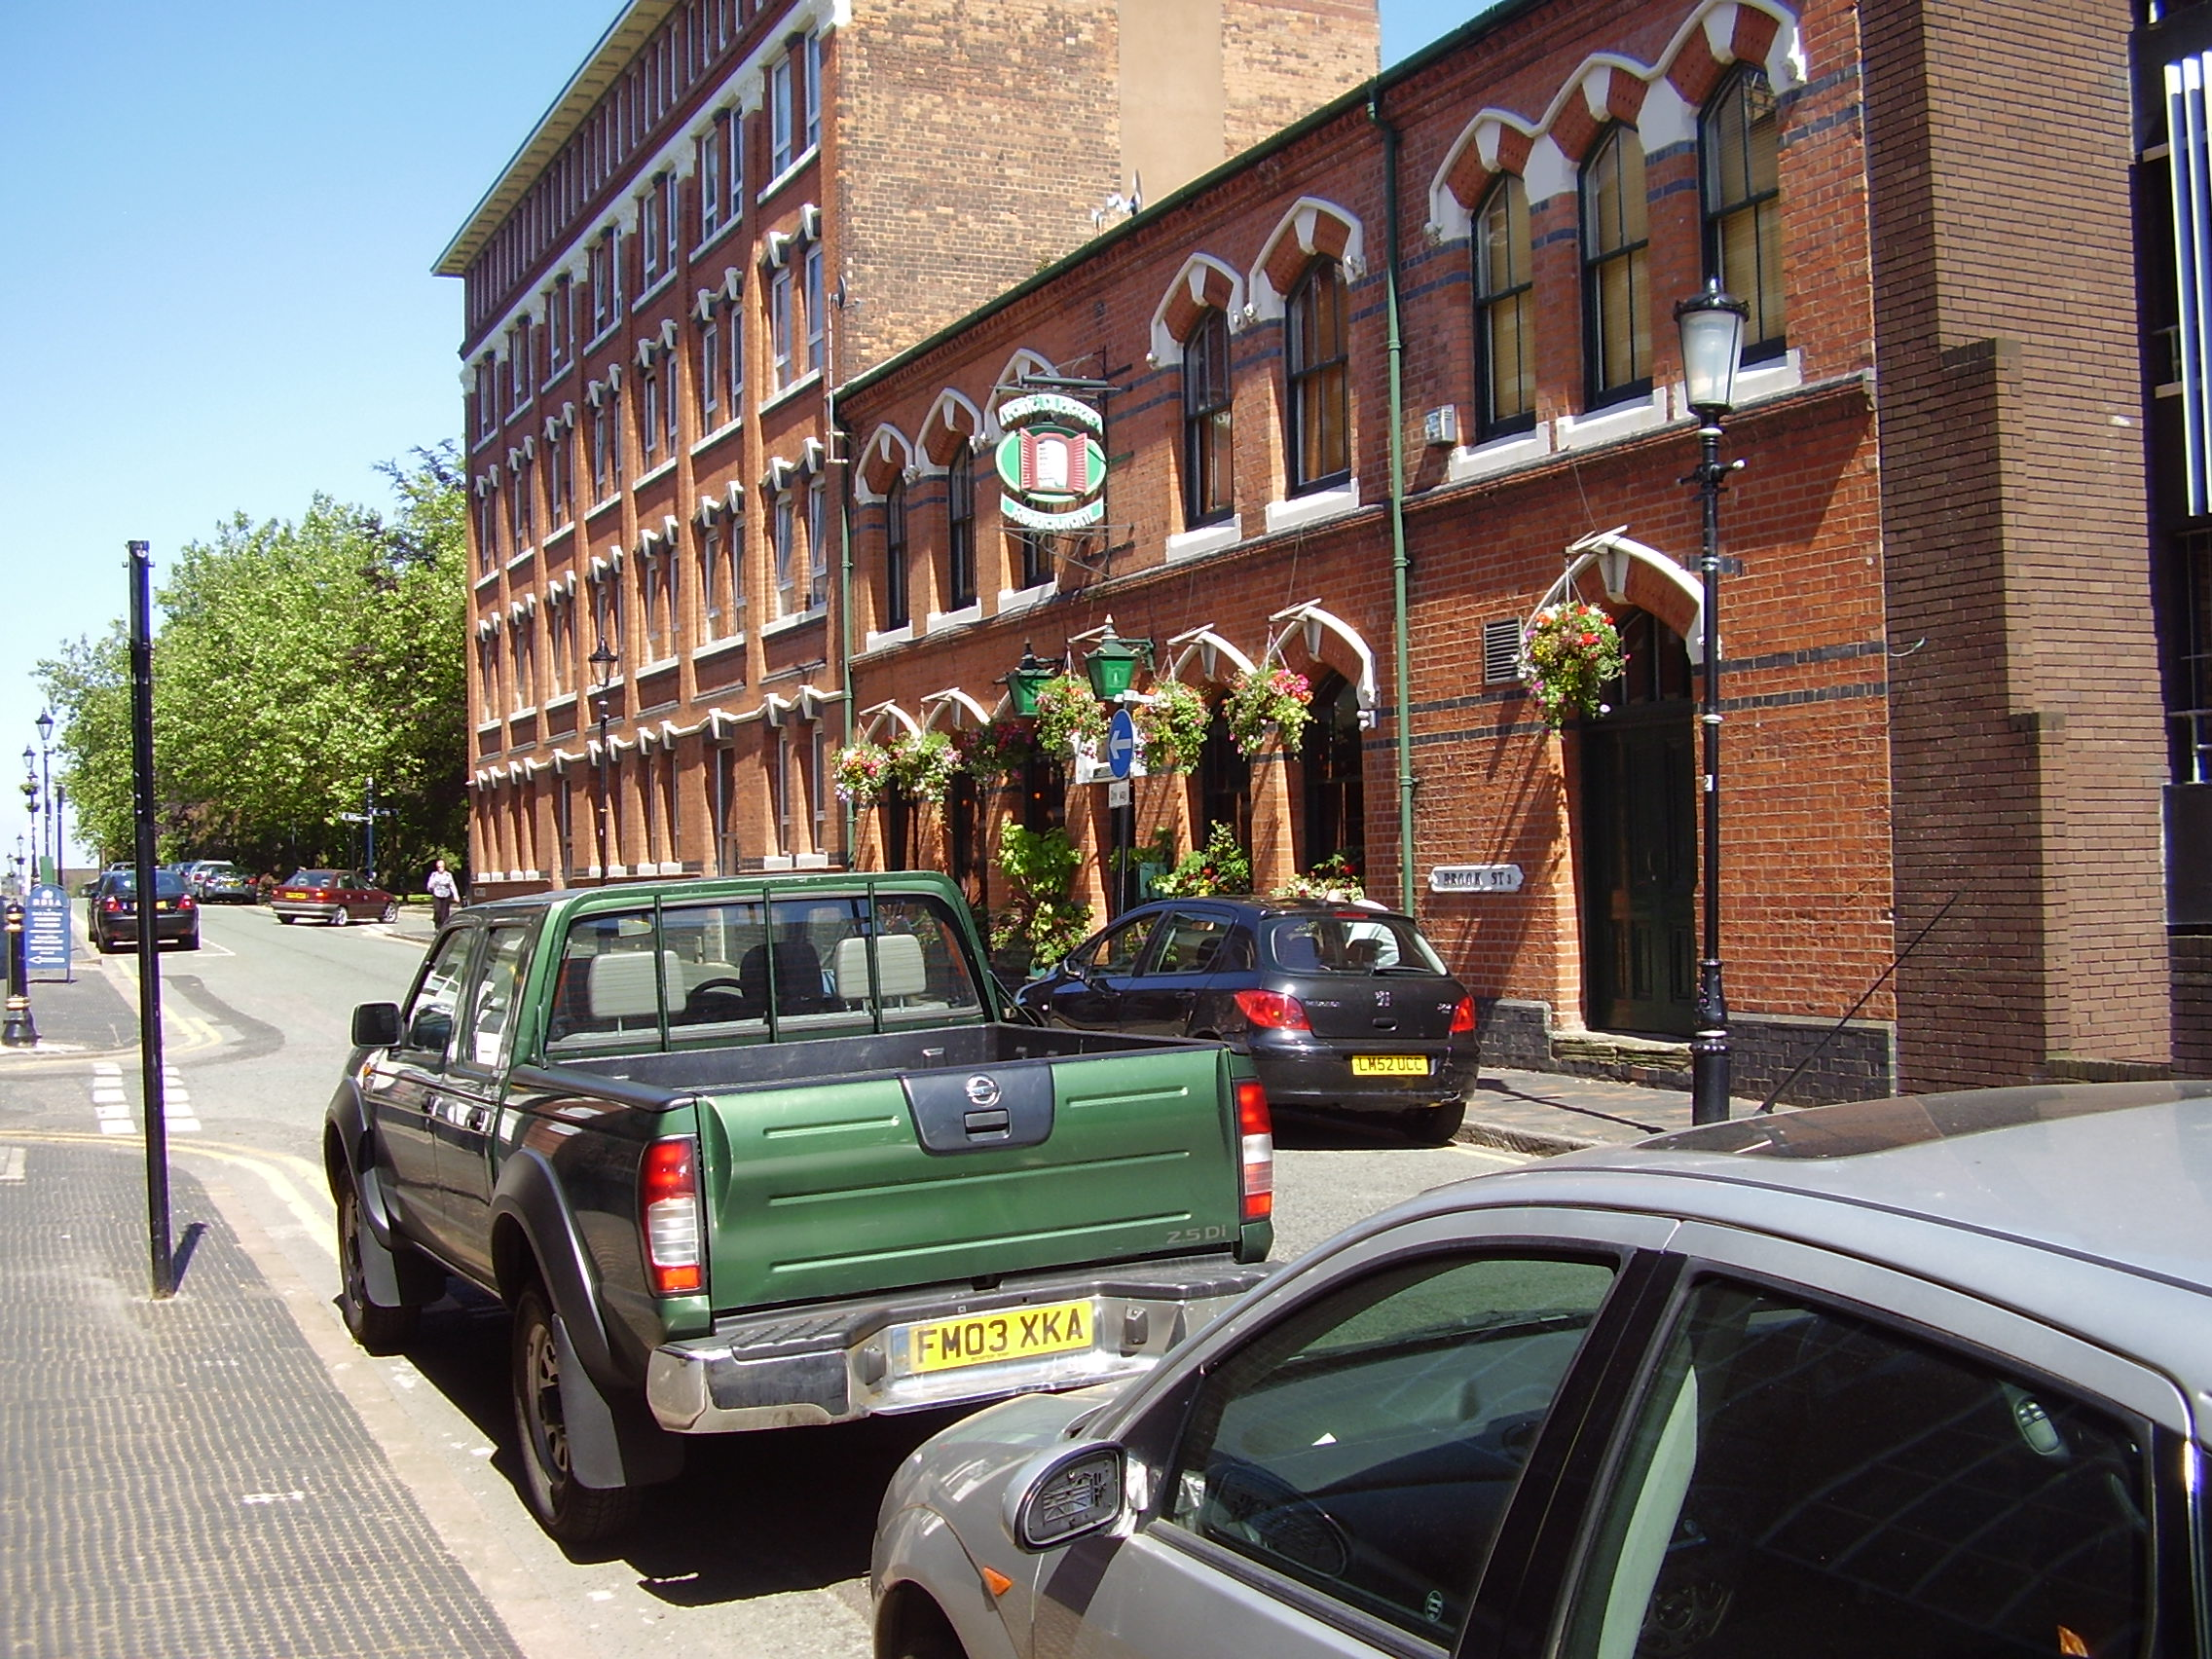 2008 Street view photo 13 of St Pauls Square Area of the Jewellery Quarter Birmingham